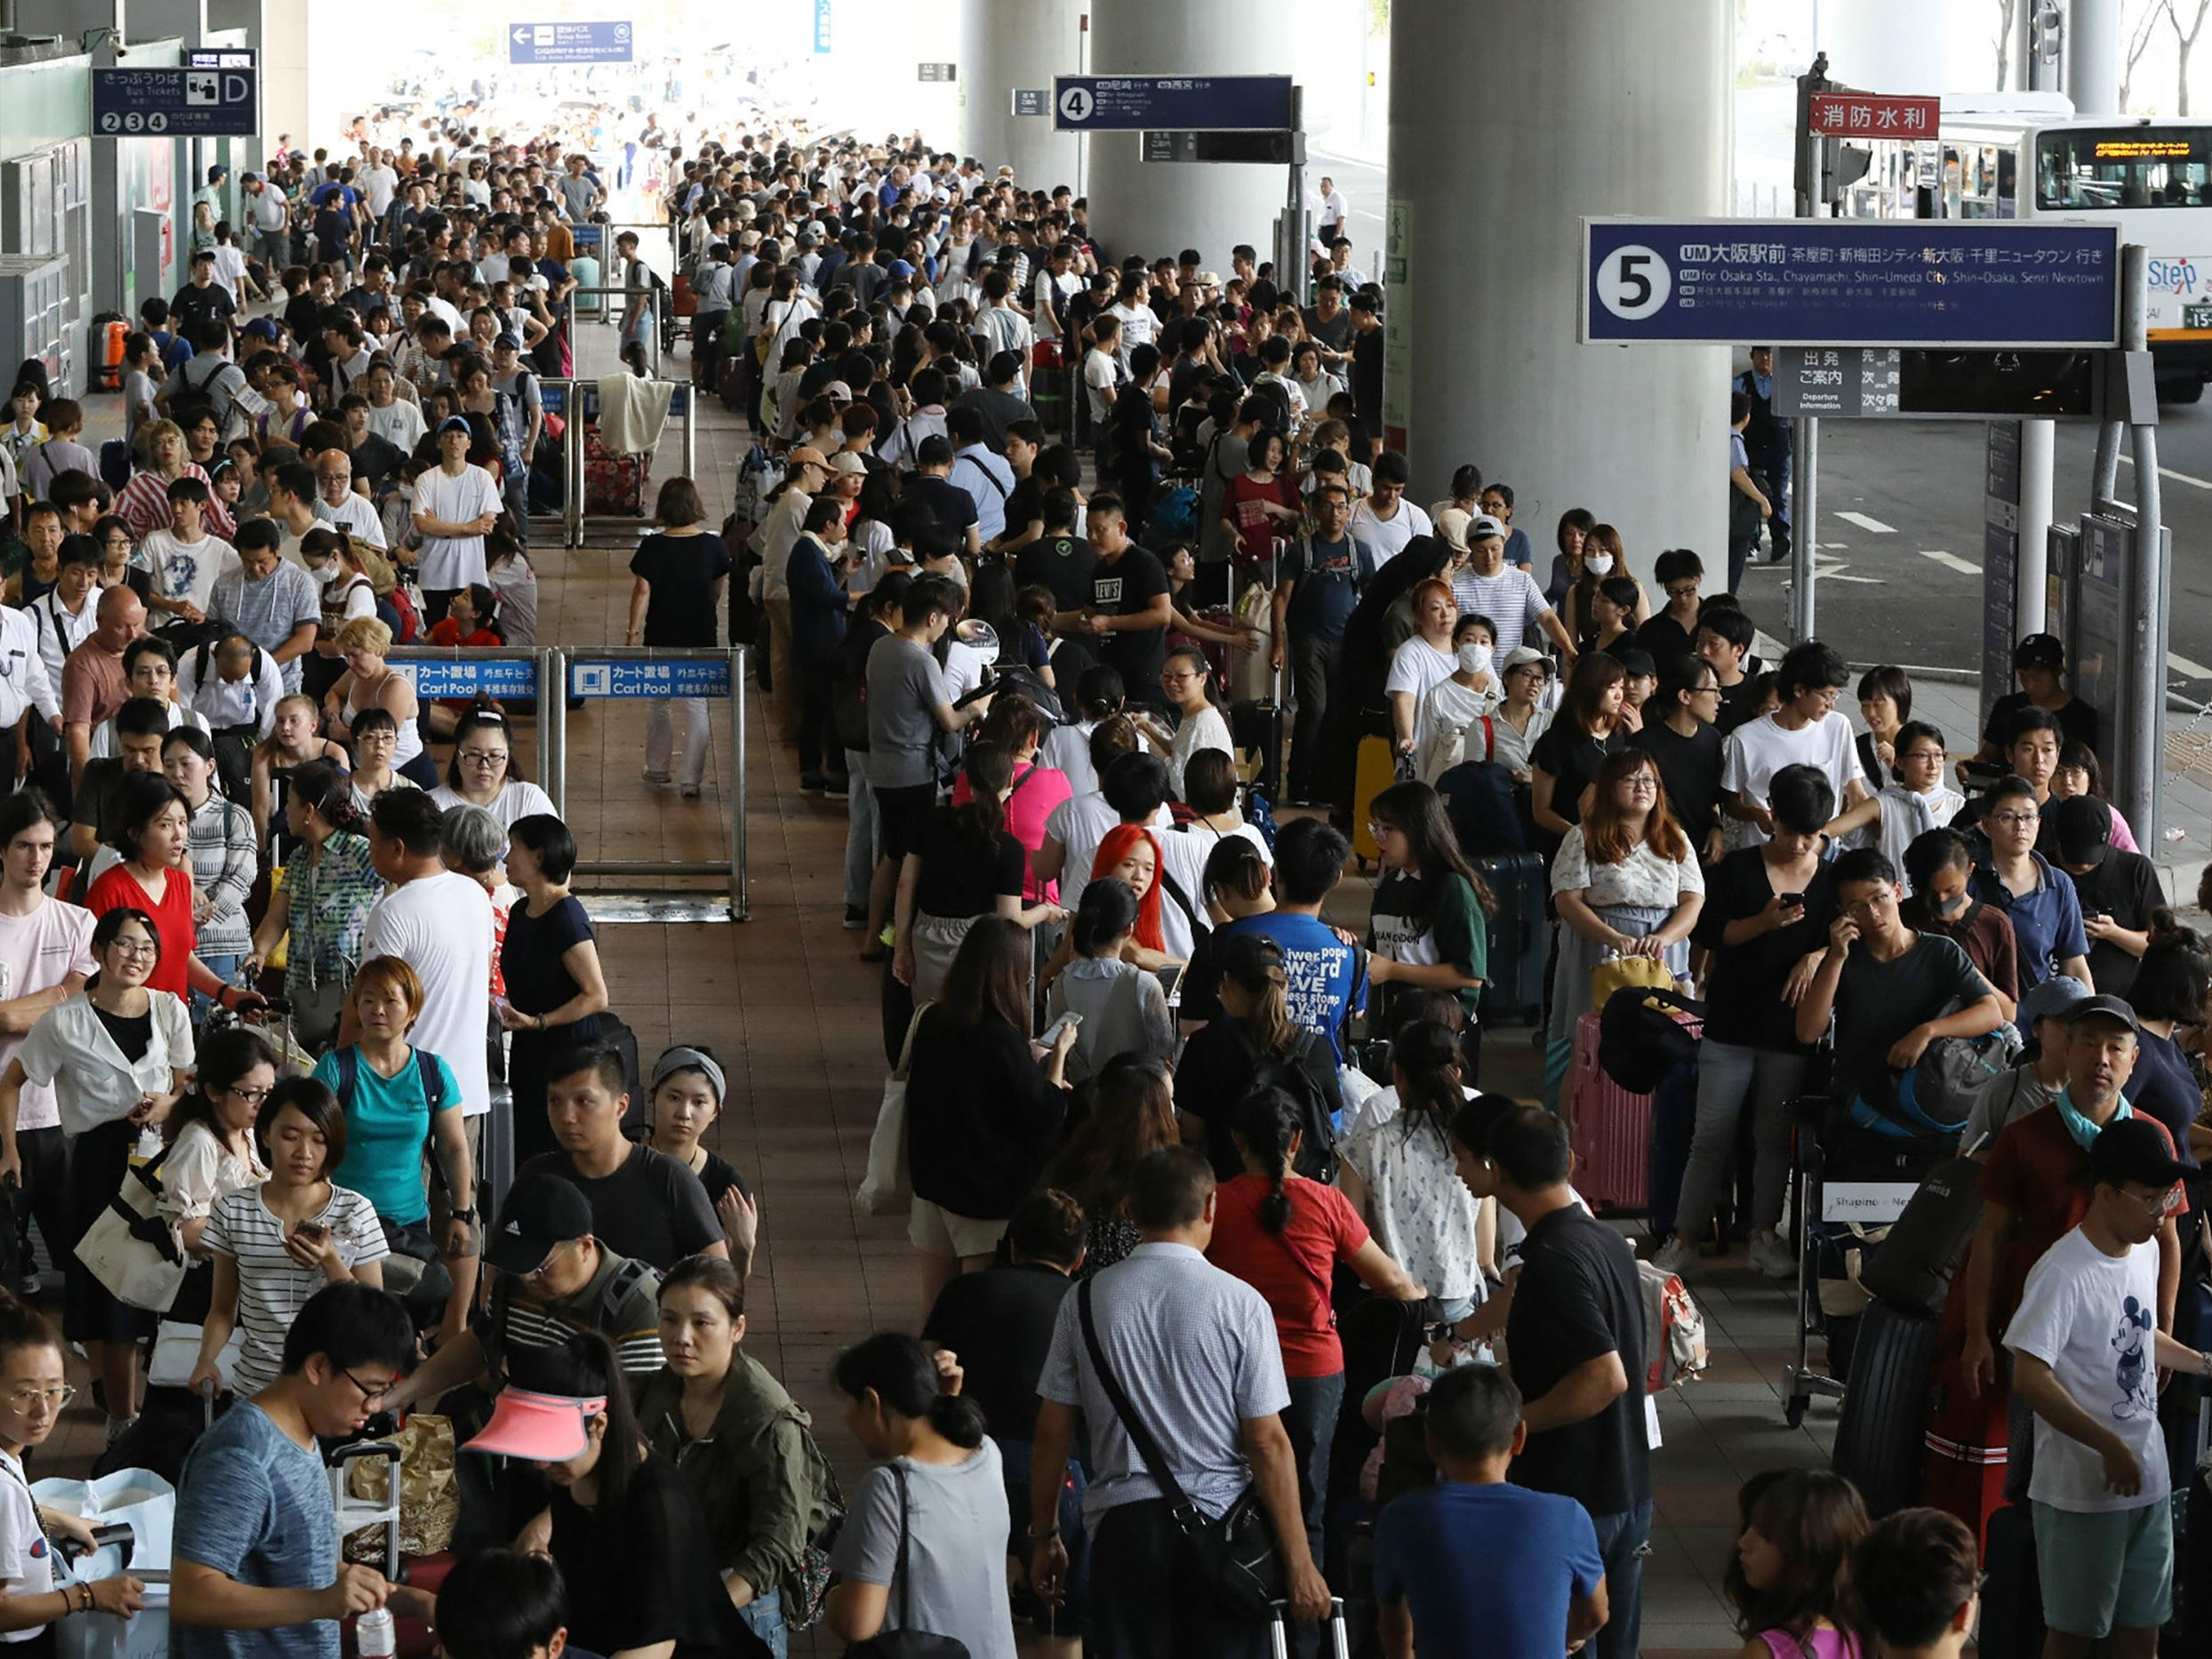 Passengers stranded overnight at the Kansai International Airport due to typhoon Jebi queue for buses that will transport them from the airport in Izumisano city, Osaka prefecture on Sept. 5, 2018. The major airport was cut off when a huge typhoon smashed through its sole access road and was being evacuated on Sept. 5, as Japan grappled with devastation caused by its most powerful storm in a quarter of a century.